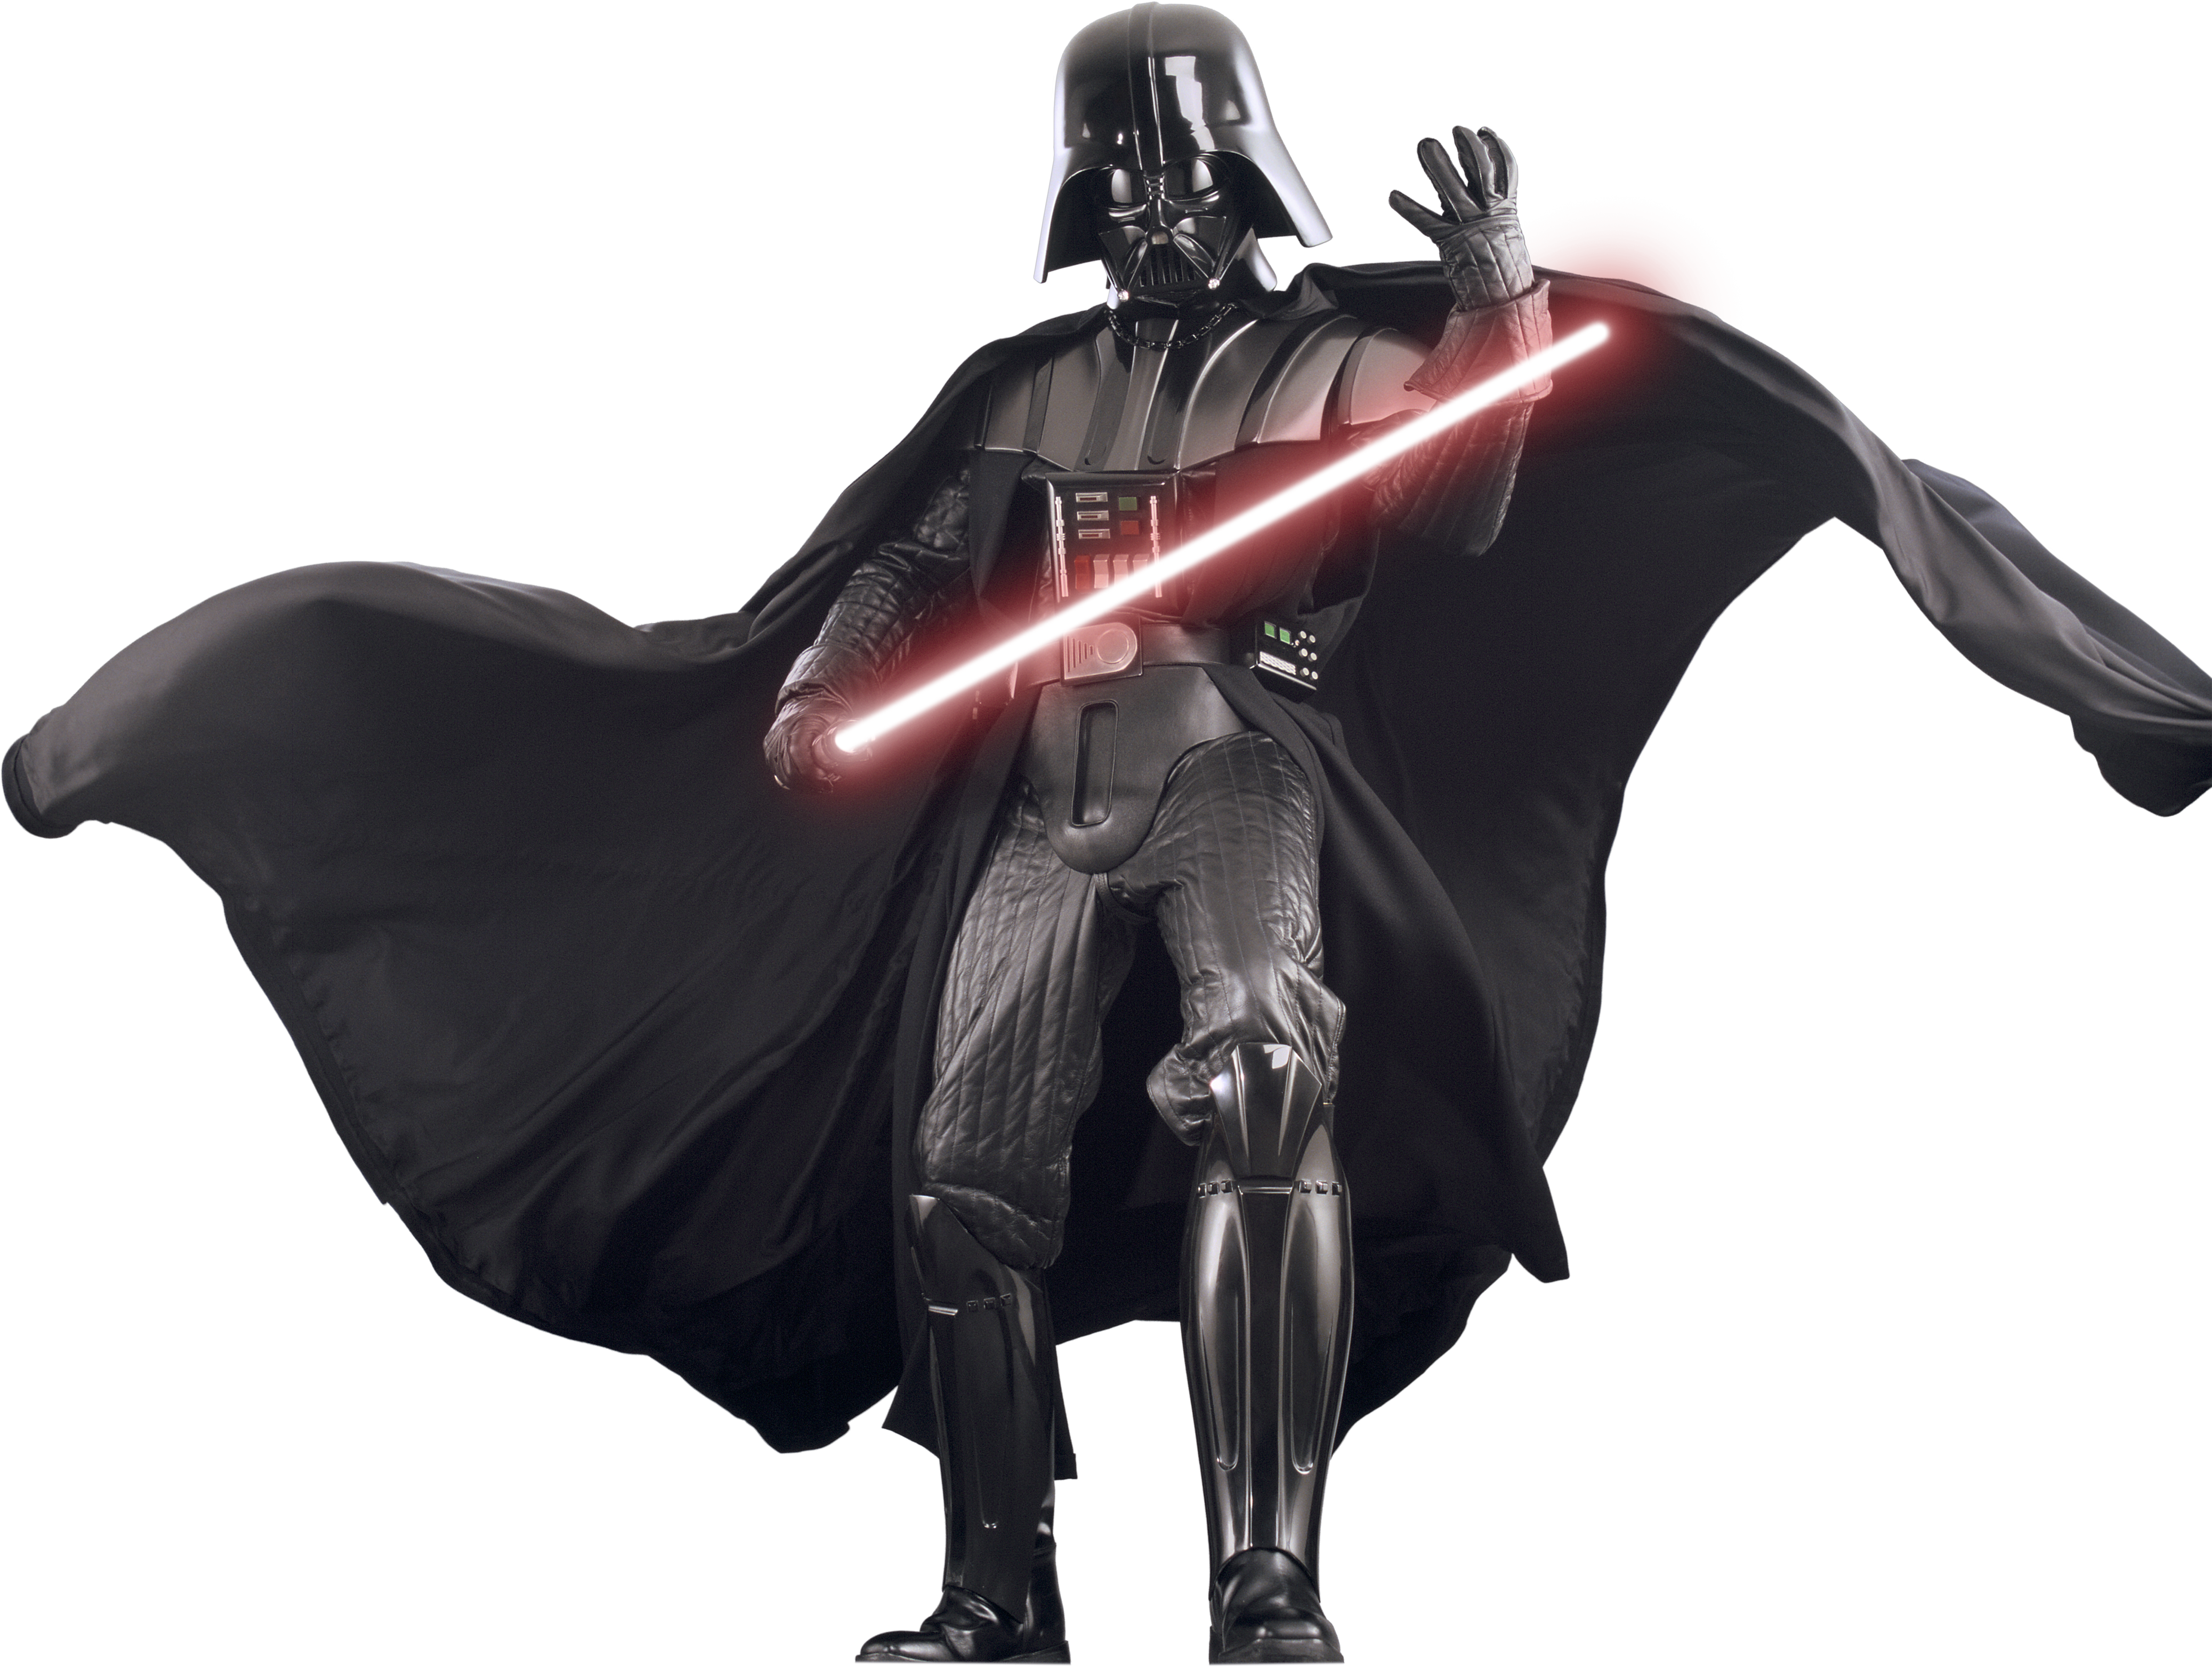 photograph regarding Darth Vader Printable Mask known as Elf Upon The Shelf Star Wars Cost-free Printable Plans Darth